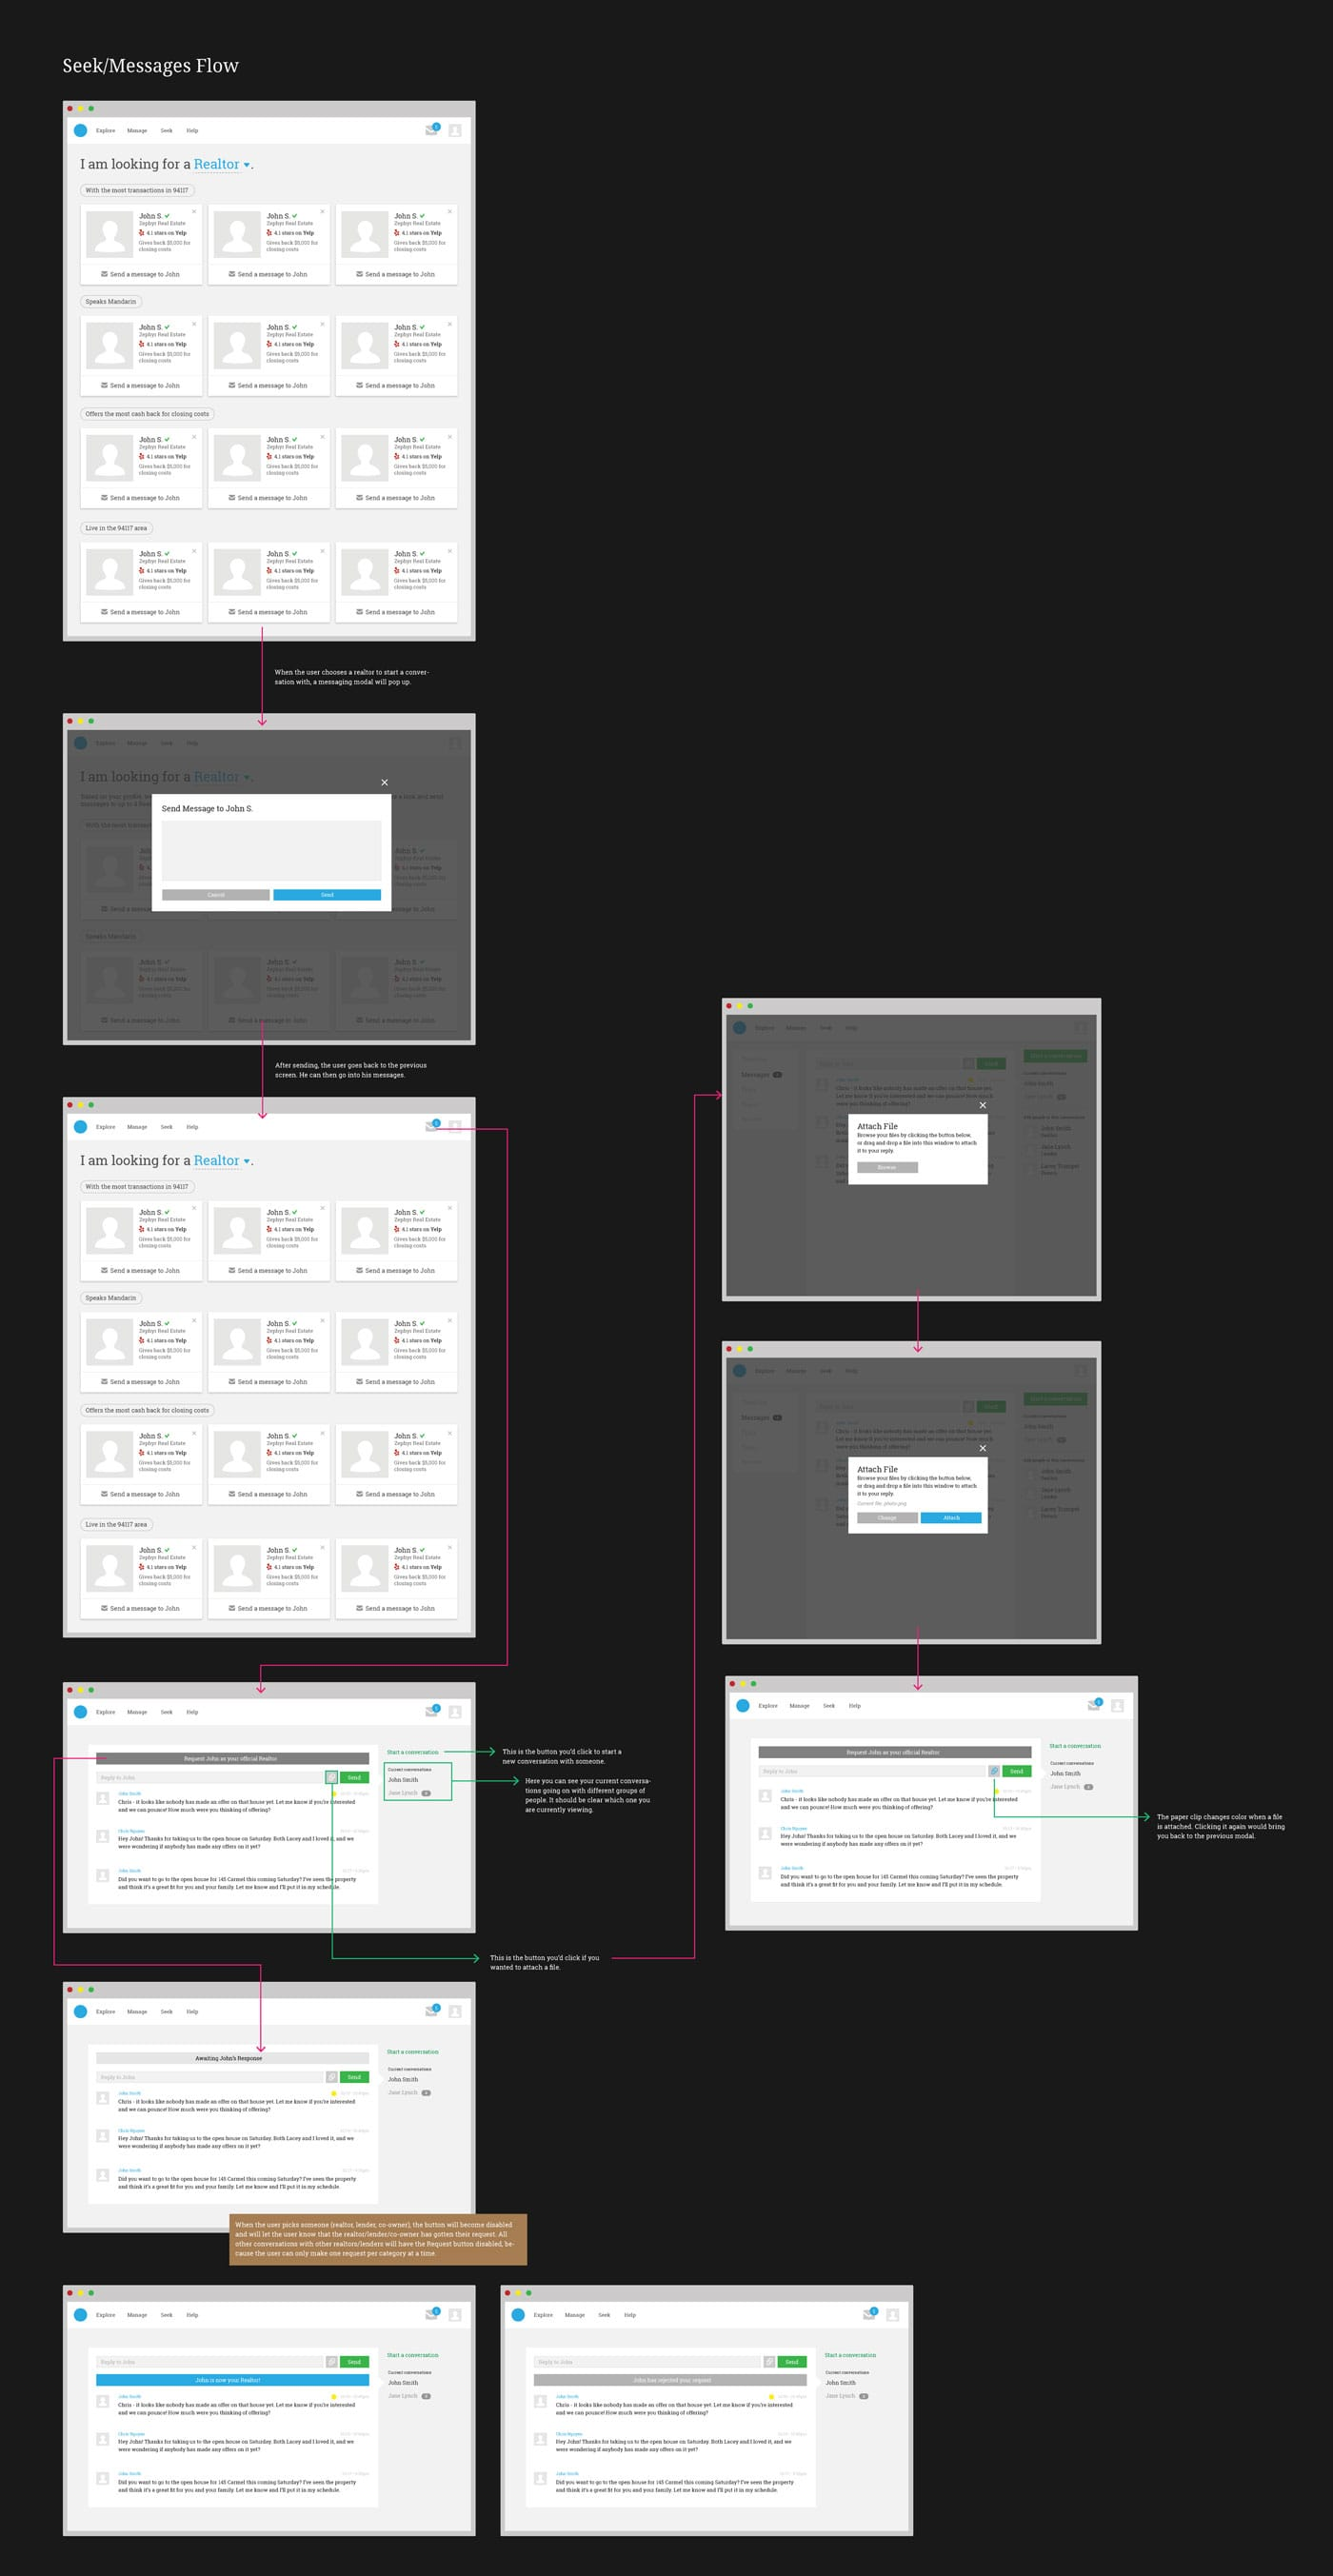 seek wireframes